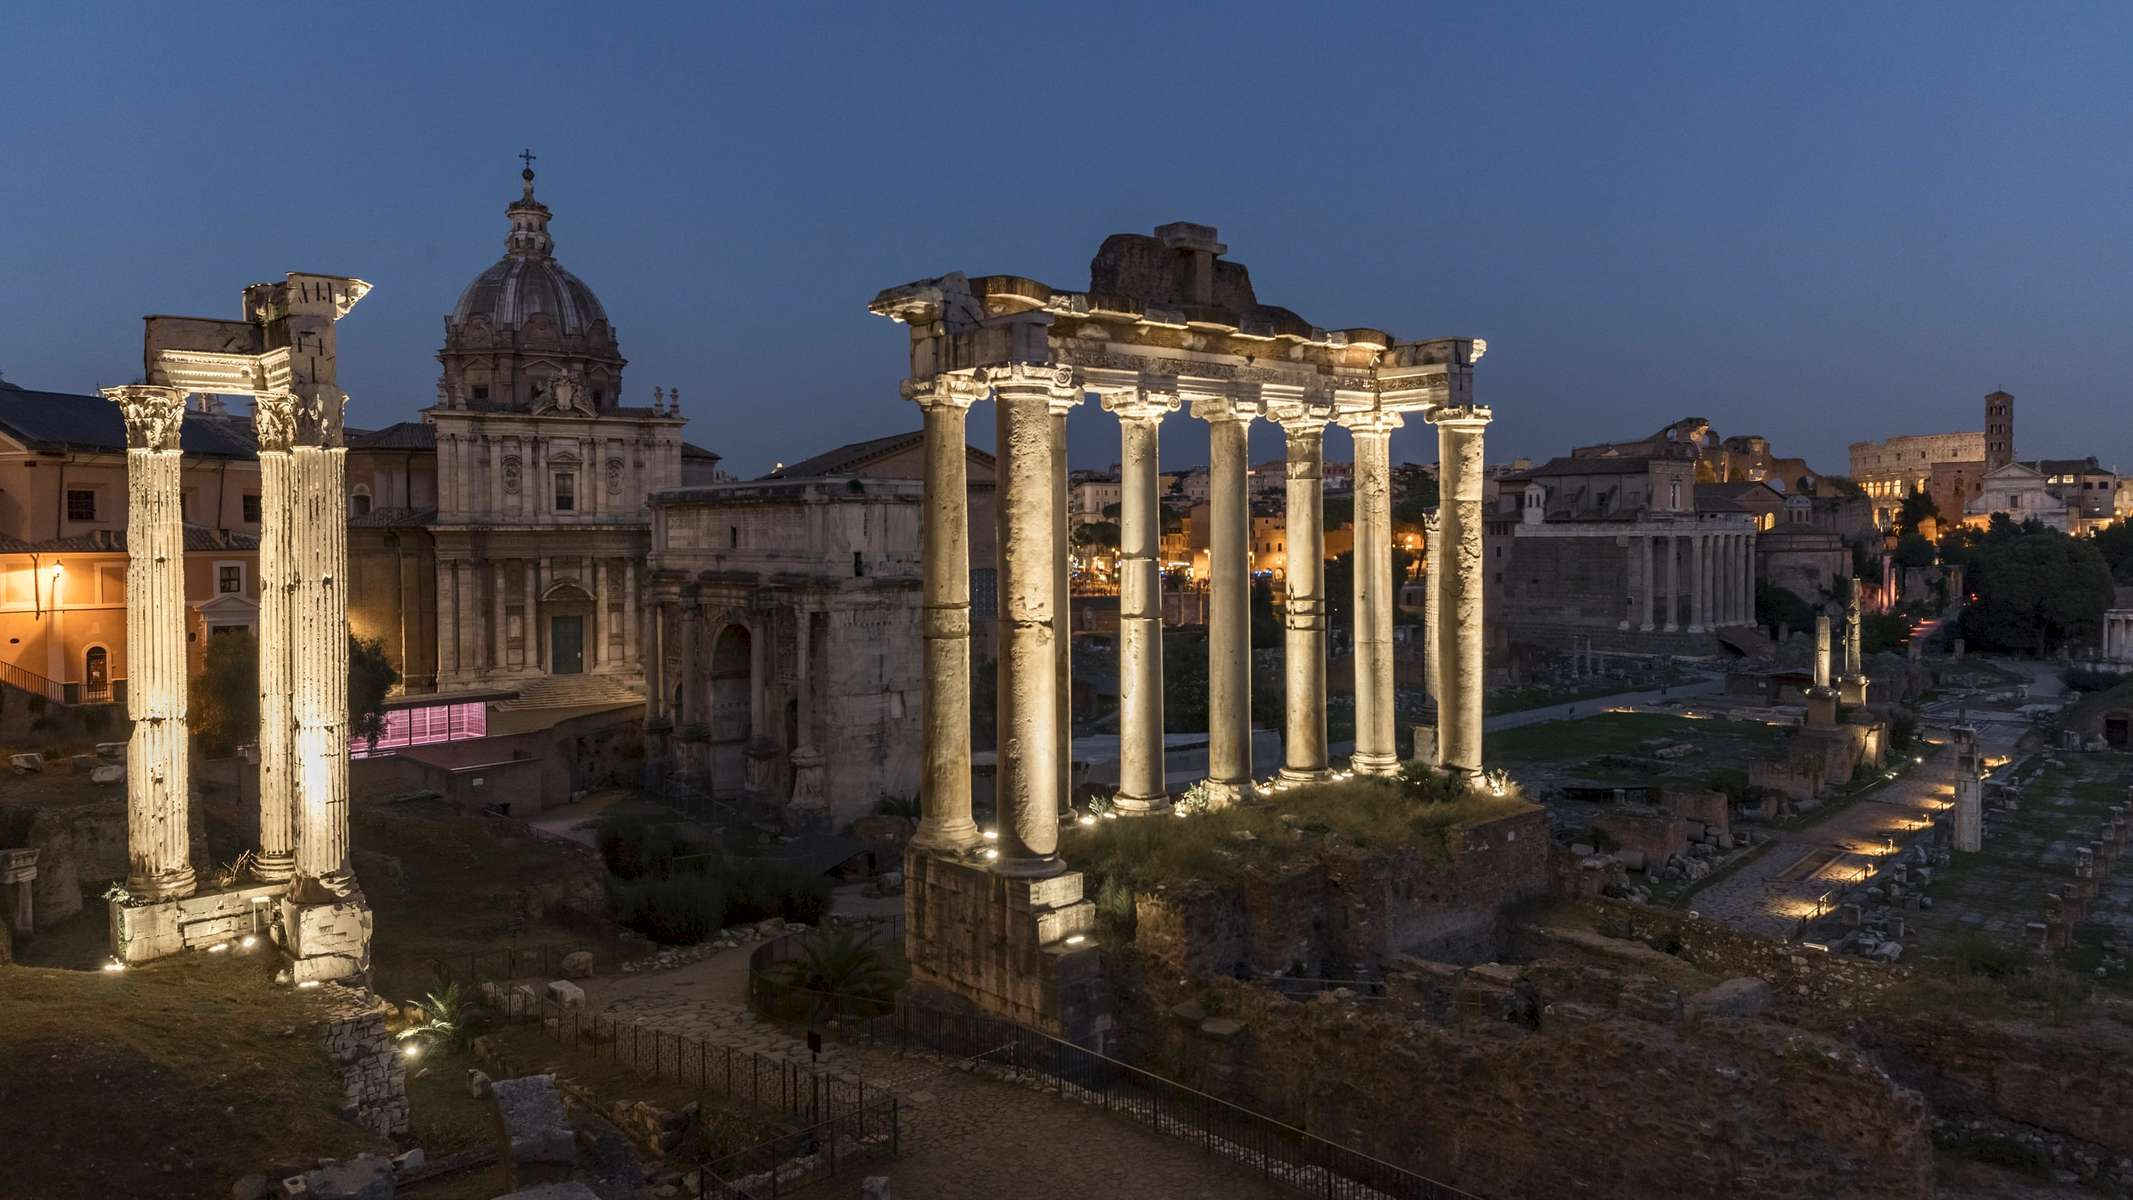 Sunset timelapse at the Roman Forum.